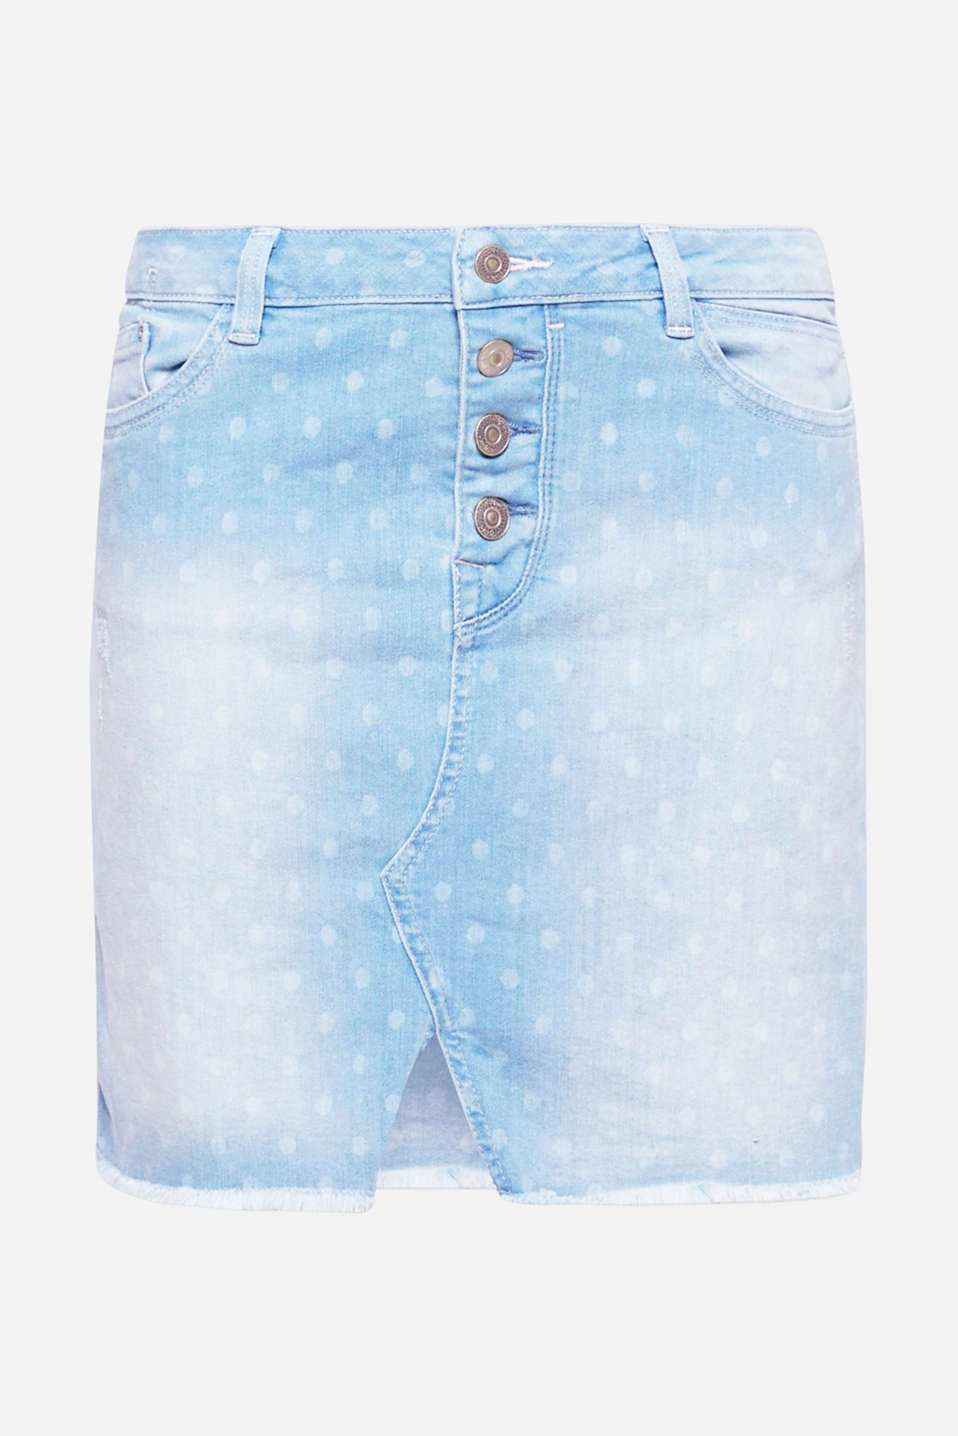 Frayed hems, a polka dot pattern and striking button placket: this denim skirt creates very clear, fashionable accents.